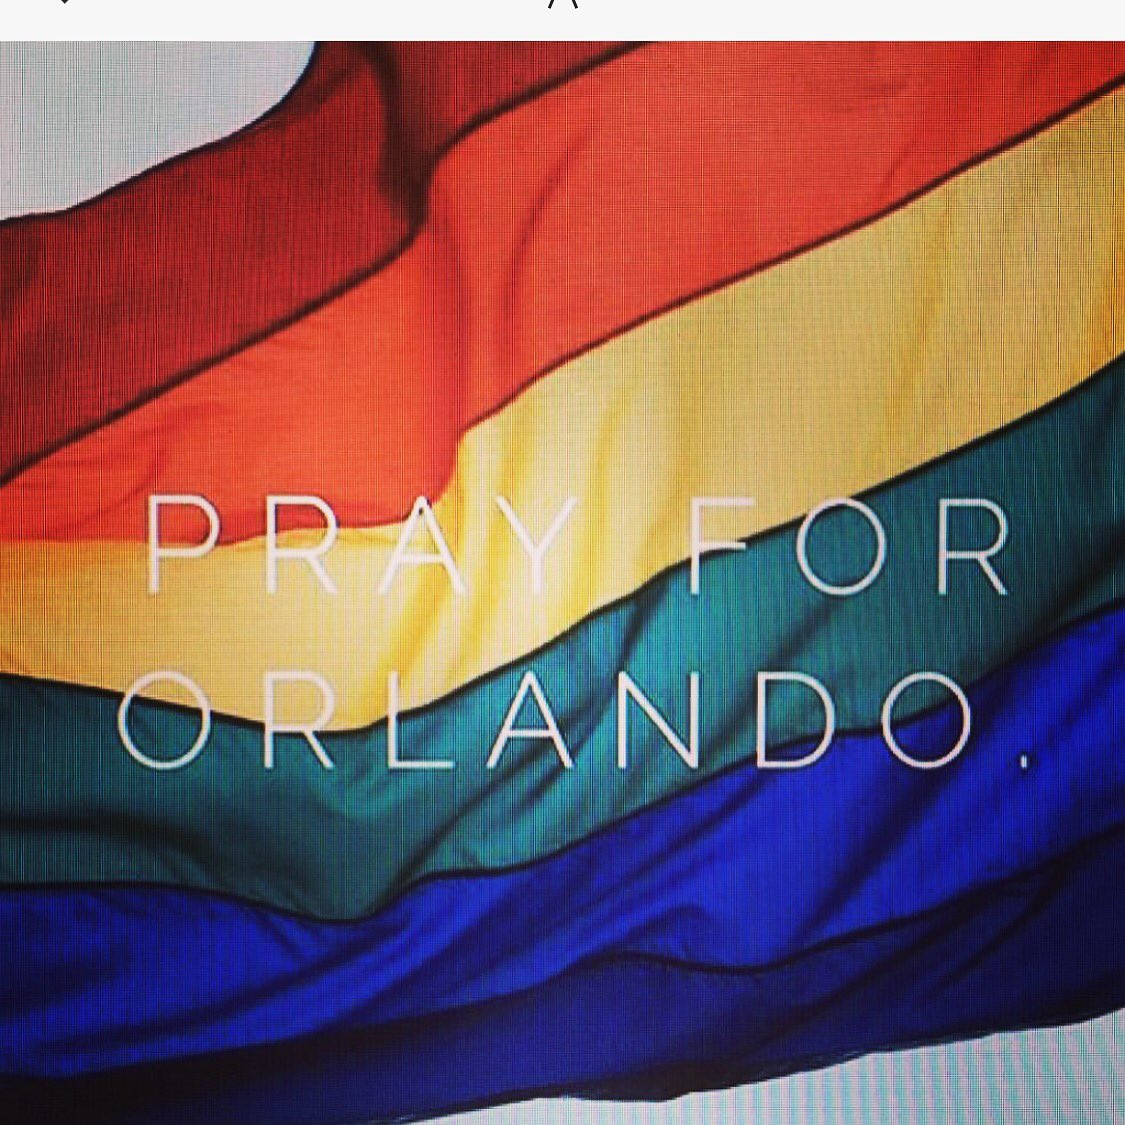 Strength grows in moments when you think you cannot but you keep going on anyway #PrayersForOrlando https://t.co/JZNhswGOyb